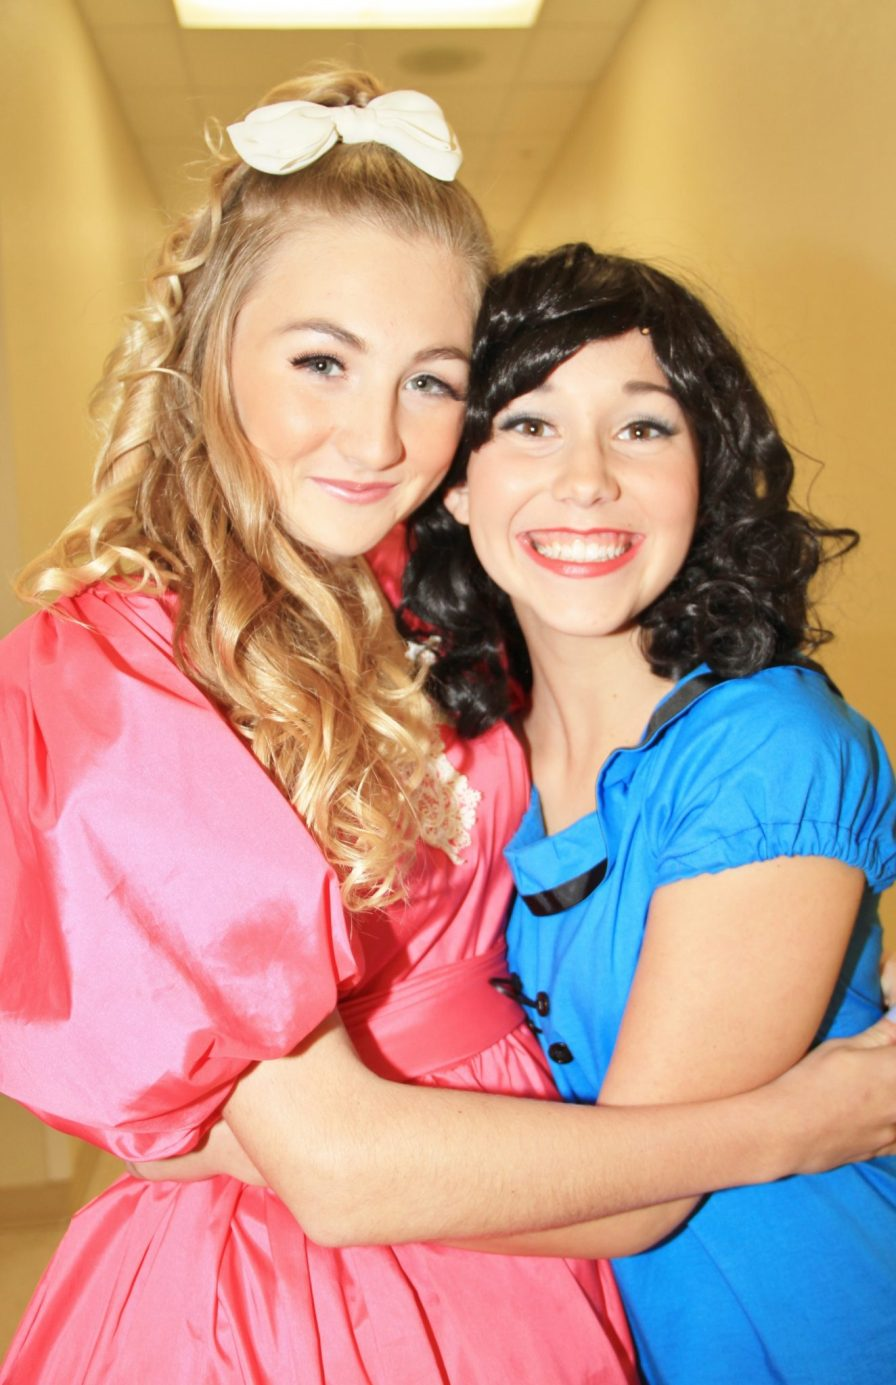 Sally Brown and Lucy Van Pelt, also known as Ariana Patterson and Claire McCarthy give each other a good luck hug before the show starts.